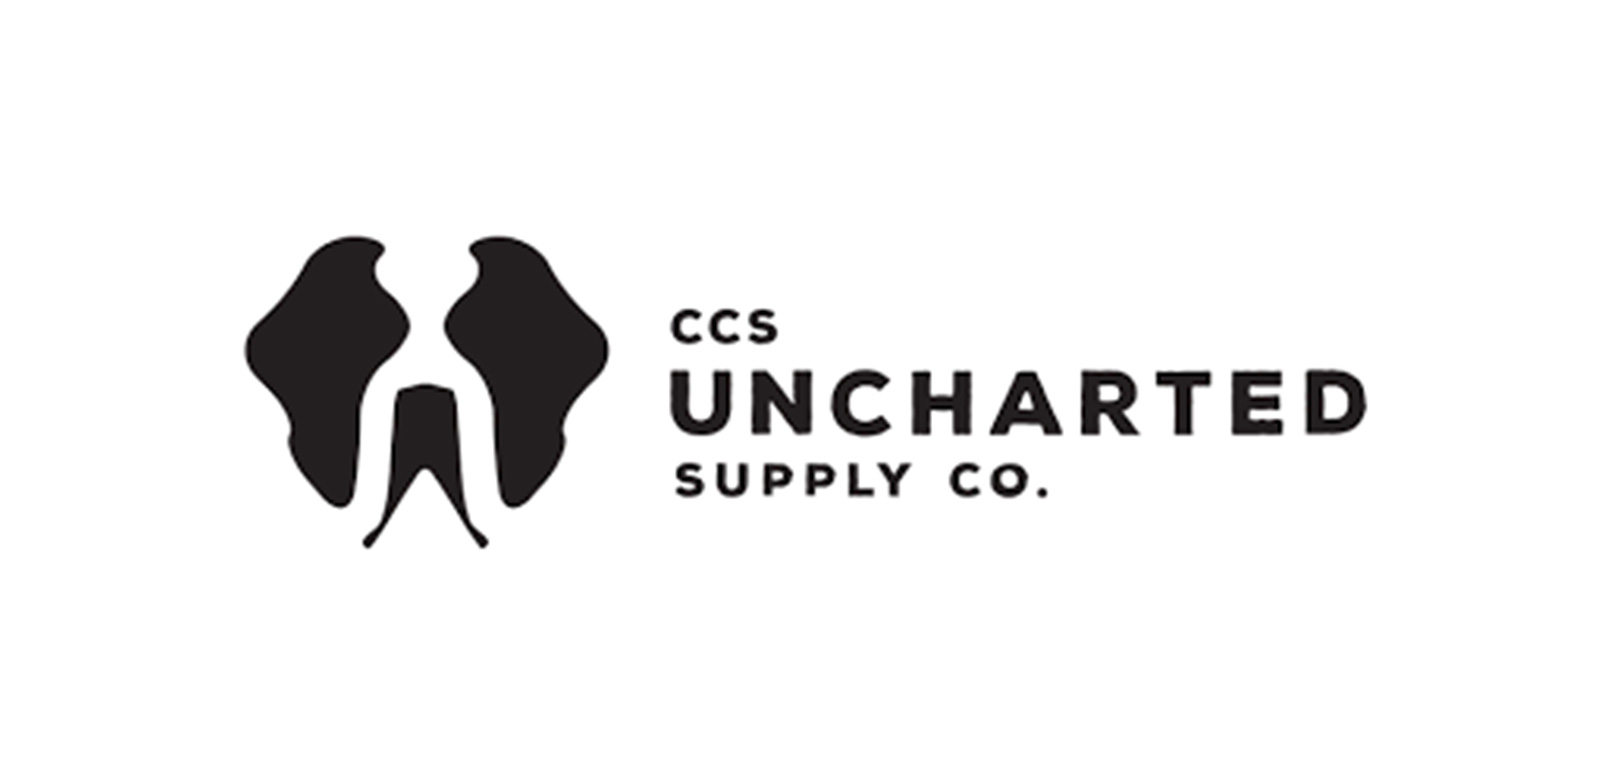 Uncharted Supply Co Logo